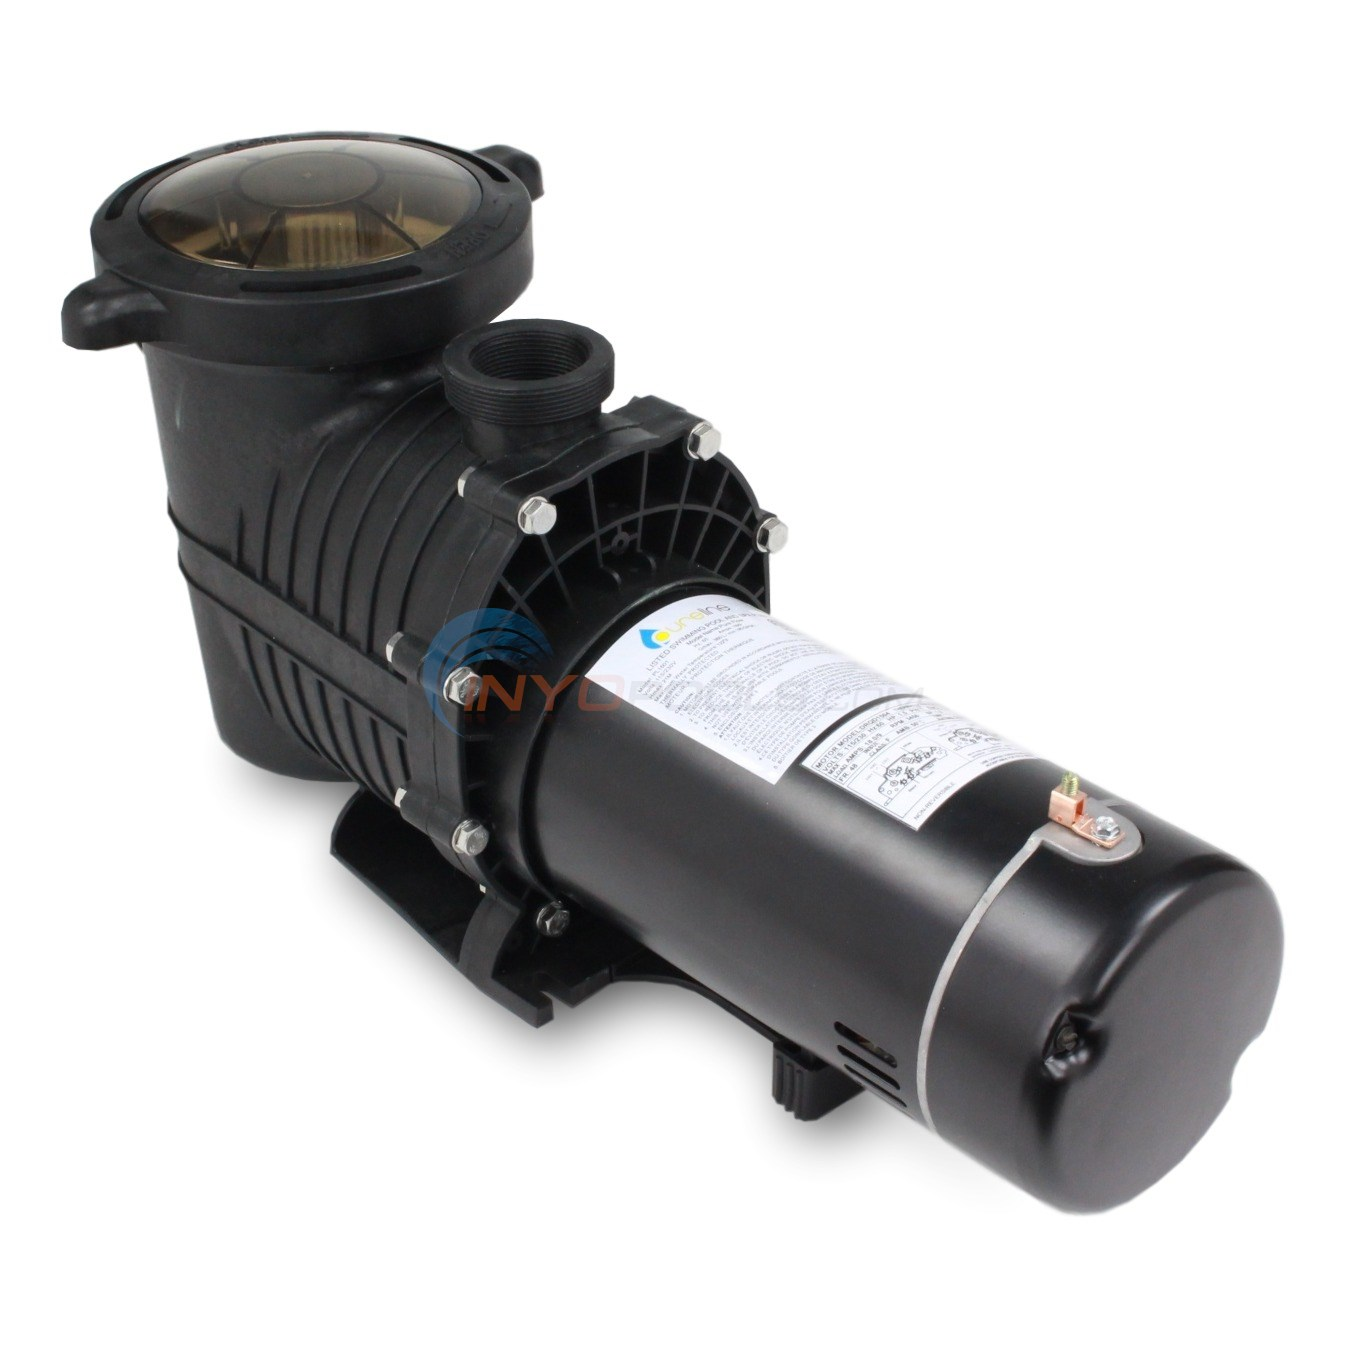 pureline pl1600 02?format=jpg&scale=both&anchor=middlecenter&autorotate=true&mode=pad&width=650&height=650 pureline 1 5 h p in ground pool pump 72744 inyopools com stark pool pump wiring diagram at nearapp.co